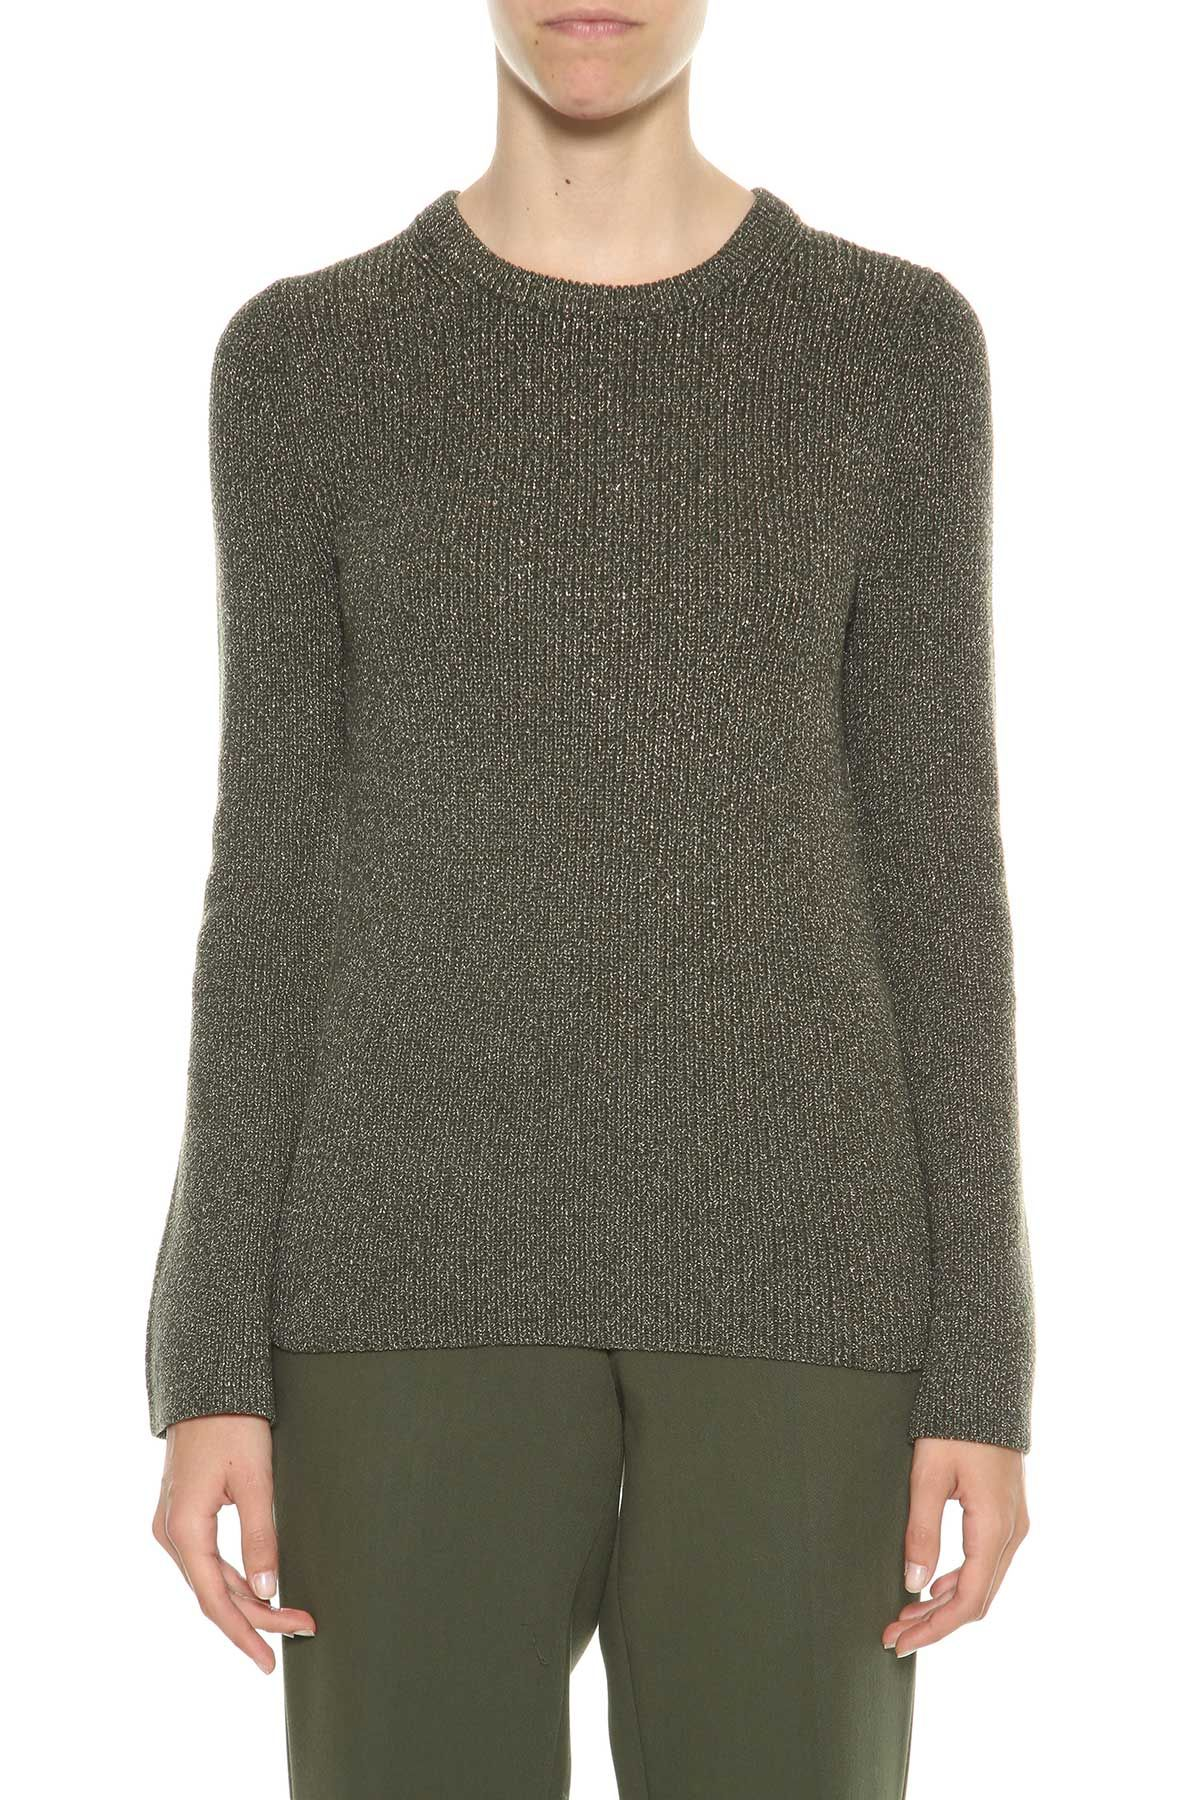 Michael Michael Kors Lurex Knitted Sweater